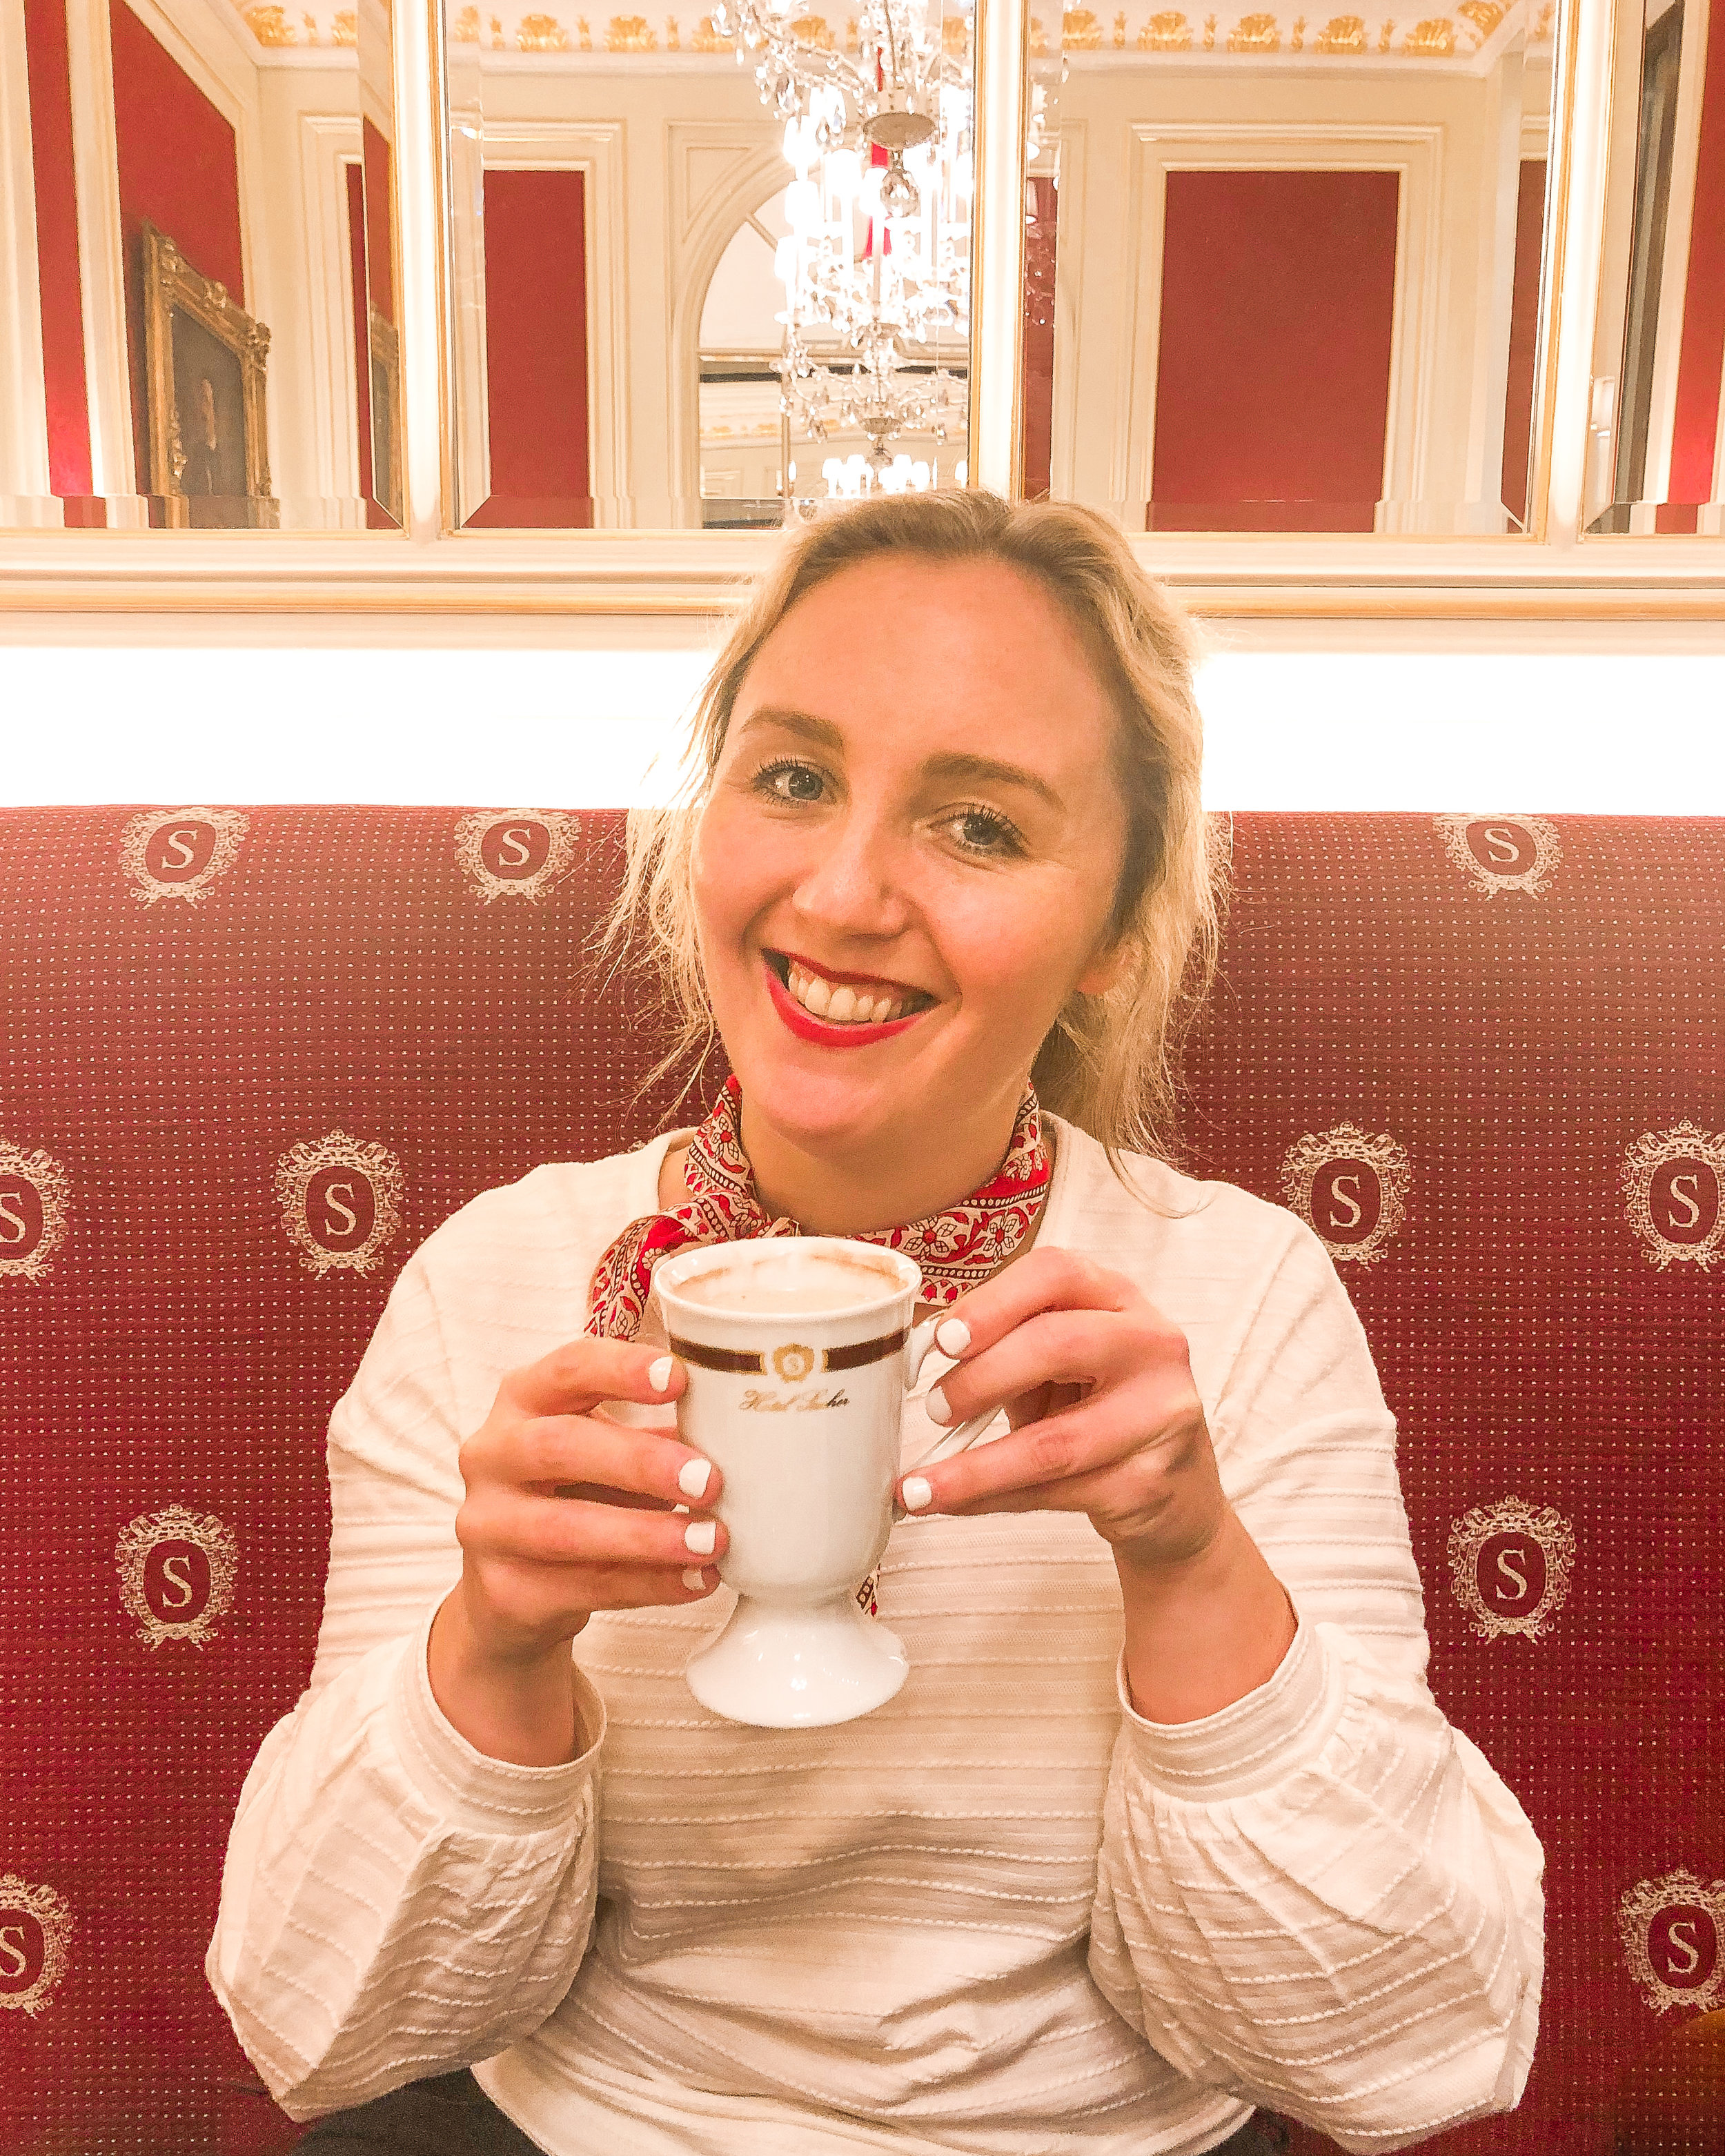 Cafe culture is a huge part of the Viennese lifestyle, and I was more than happy to partake!